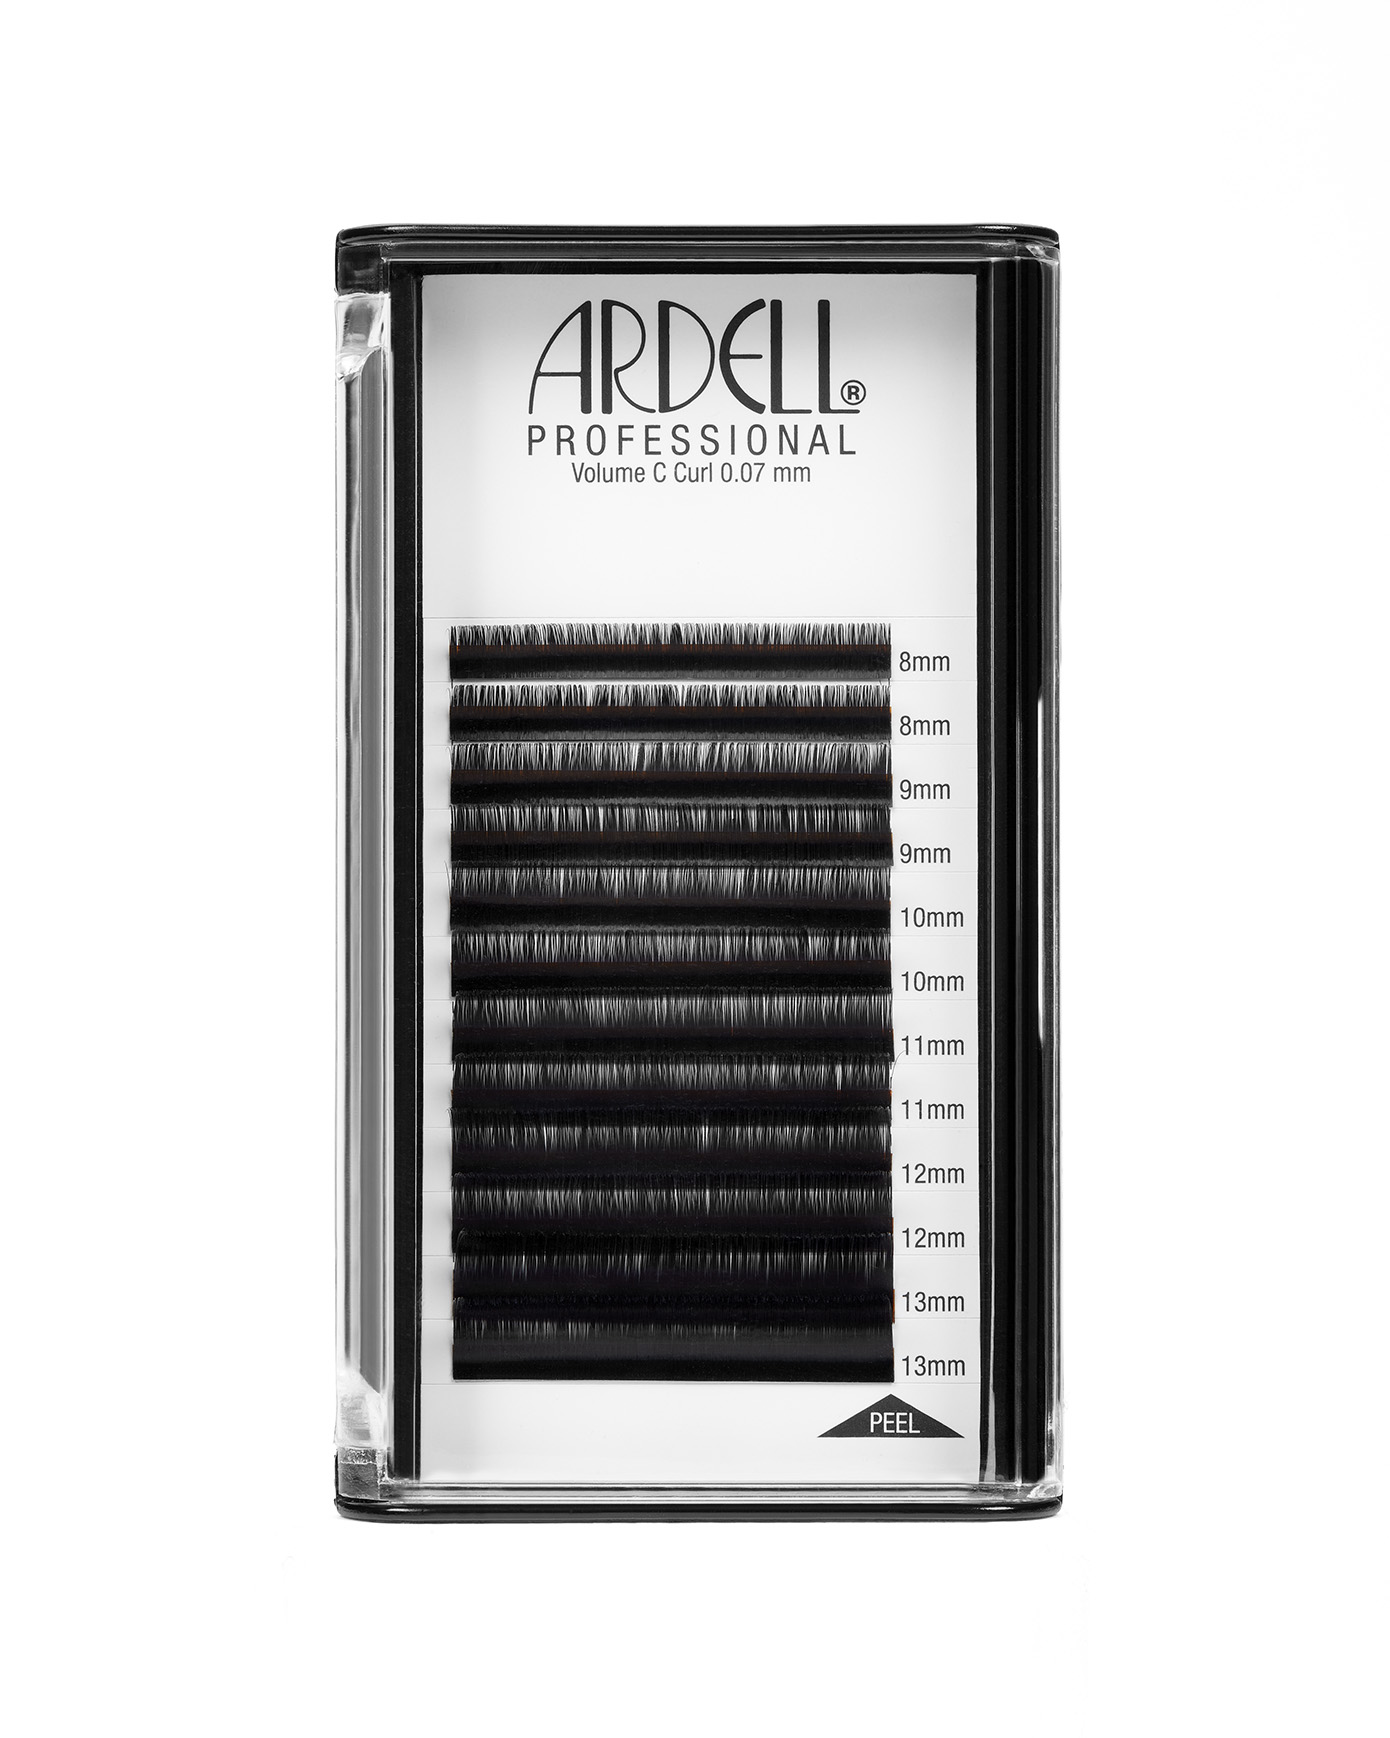 Ardell Professional Individual Lash Extensions Volume (0.07mm) - C Curl, Assorted Multi-length, 8-13mm Pack